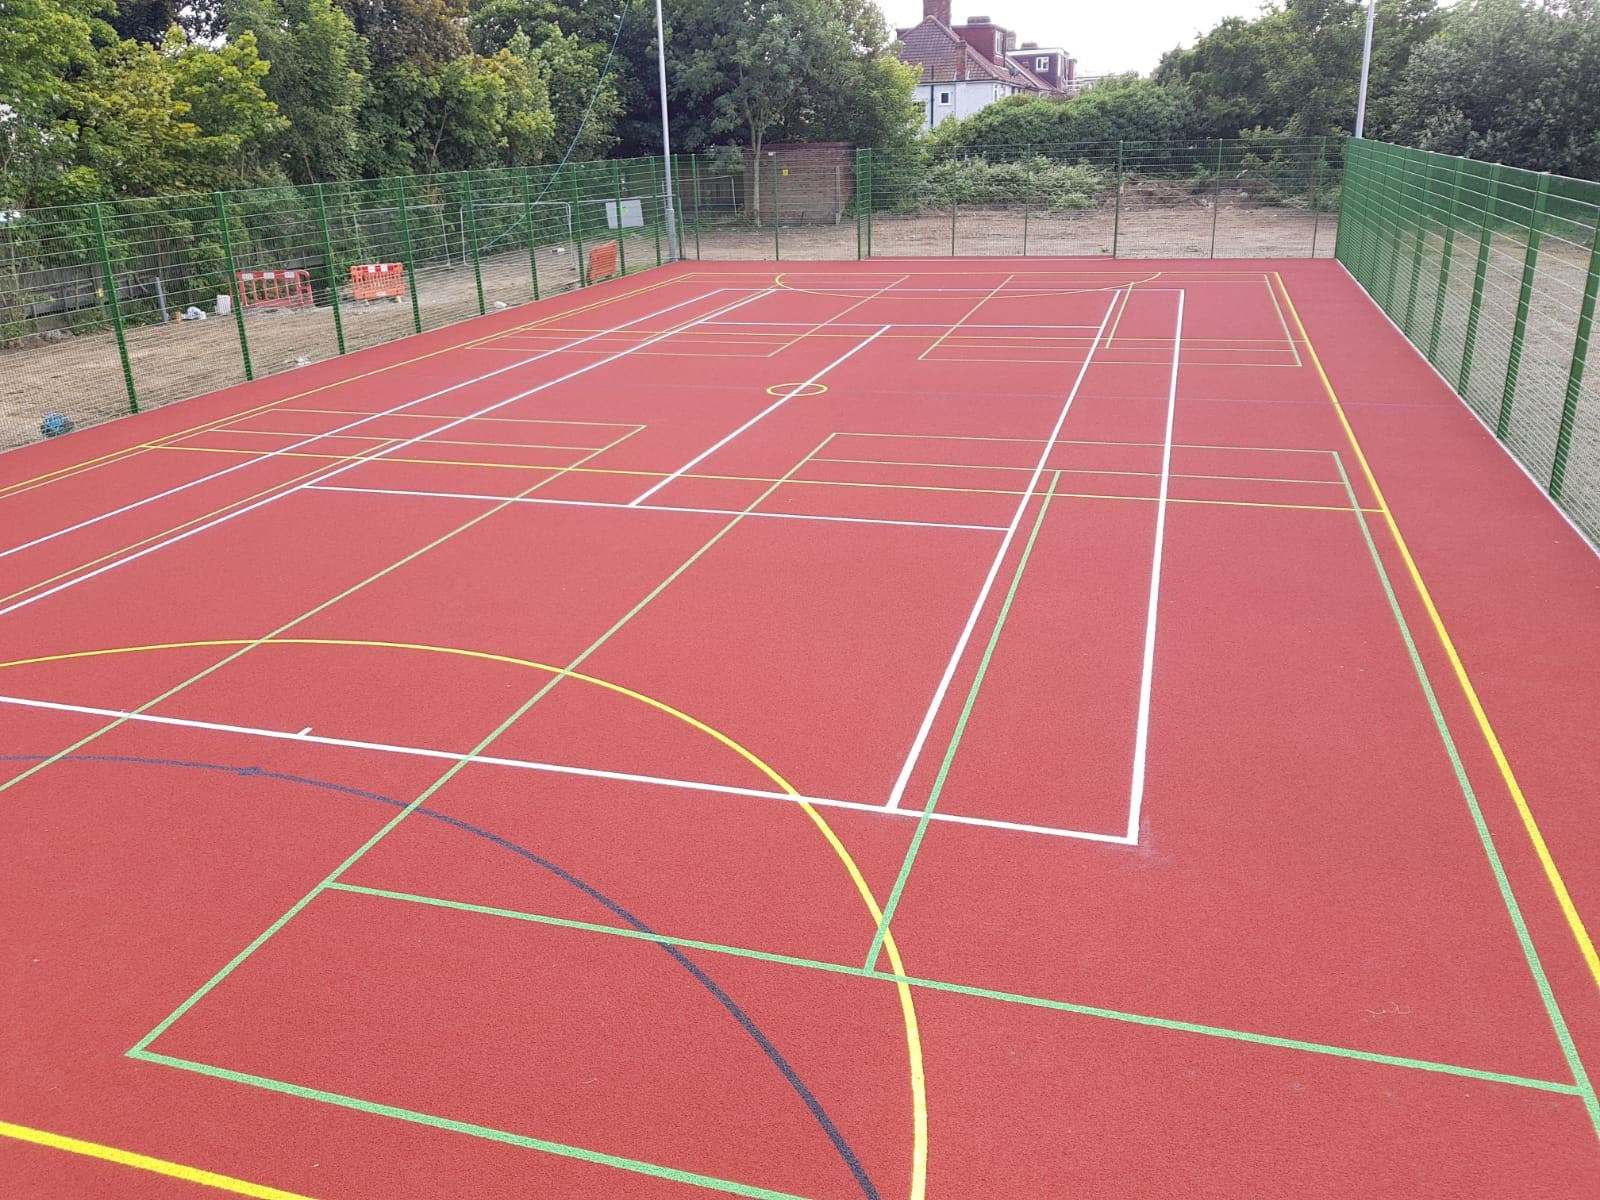 A polymeric surface is the ideal safe, hardwearing solution for a MUGA pitch